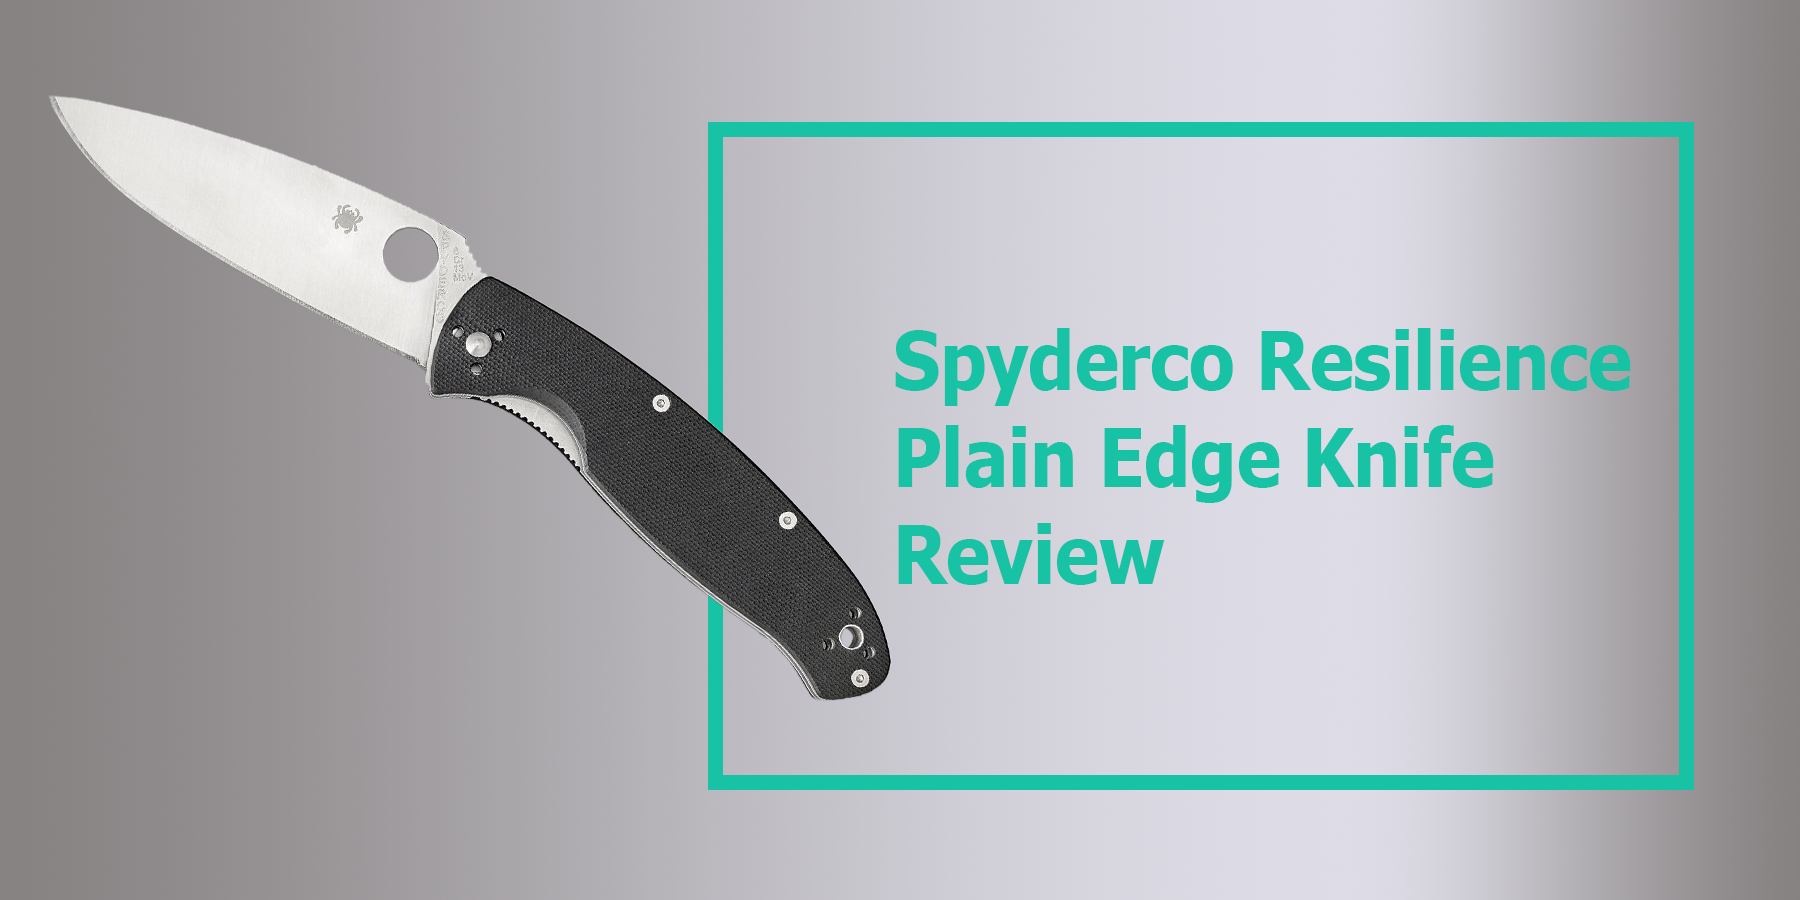 Spyderco Resilience Plain Edge Knife Review